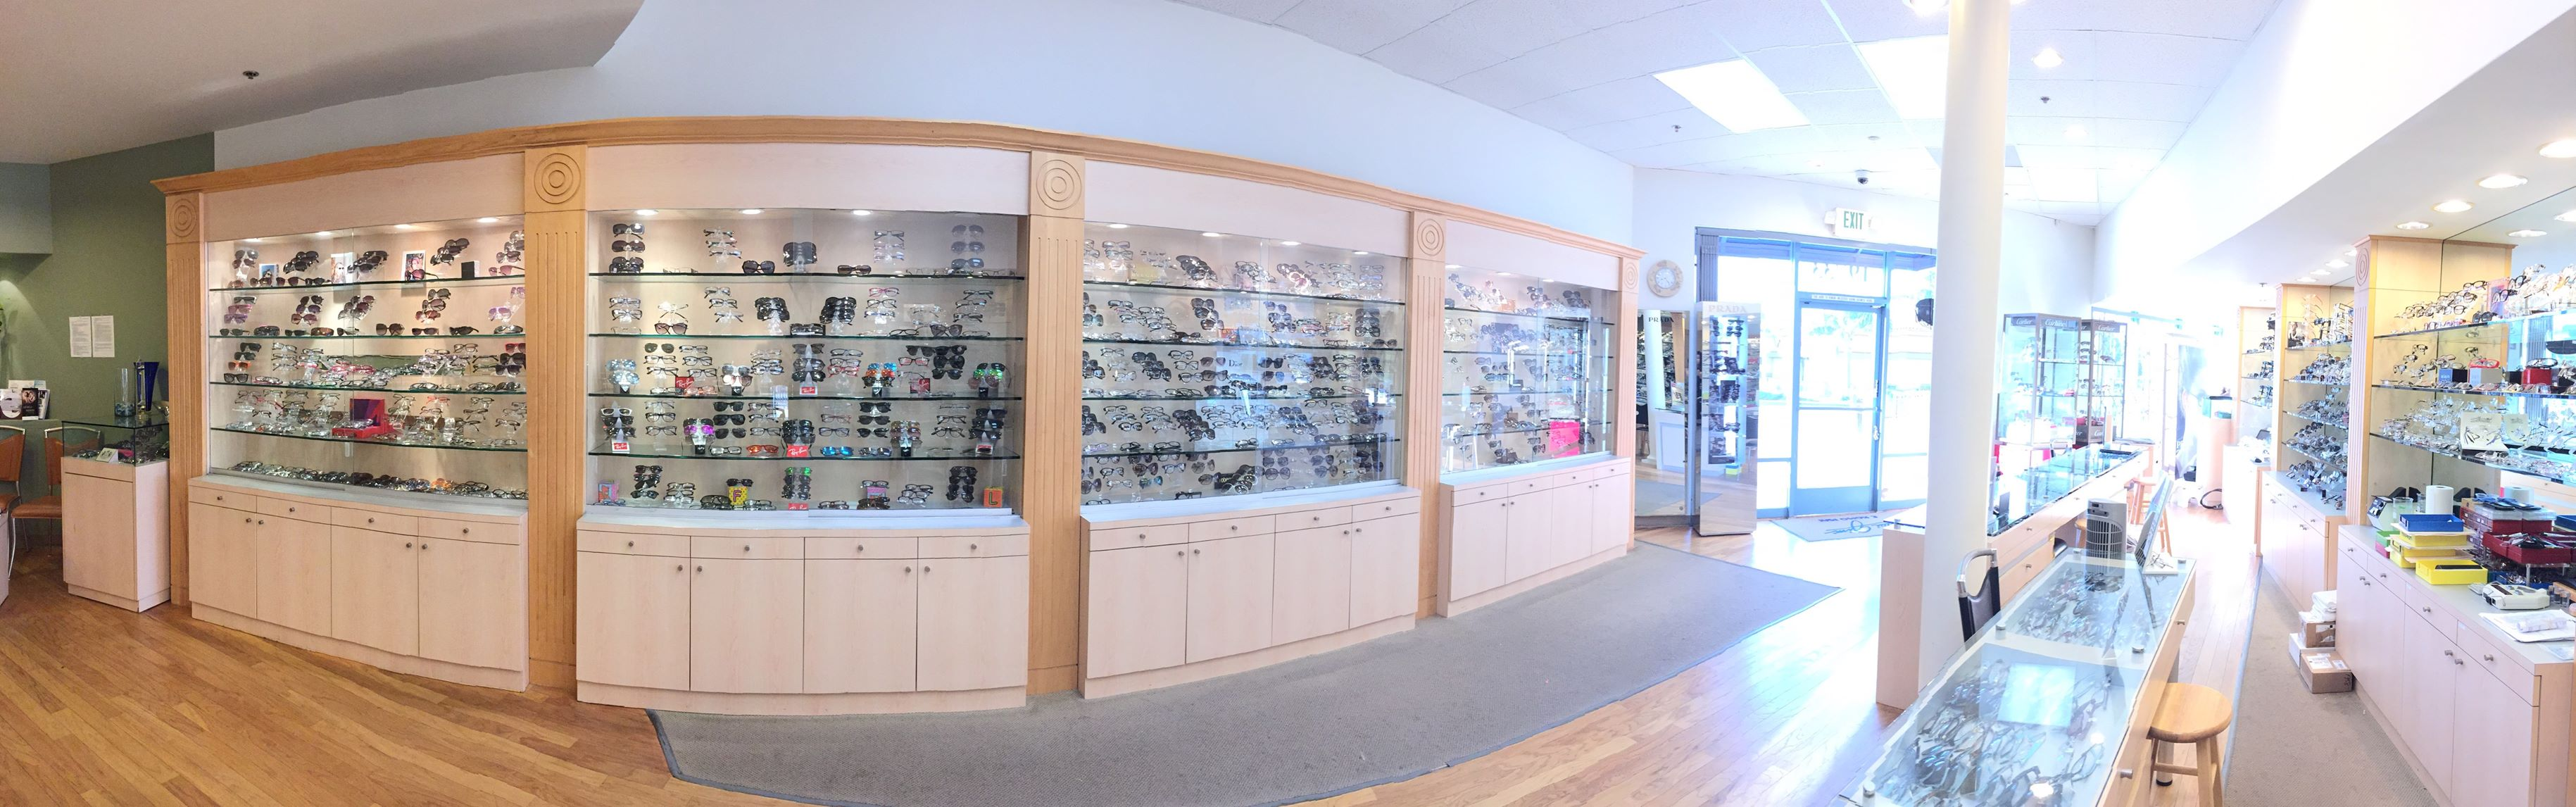 Visionmax Optometry Porter Ranch